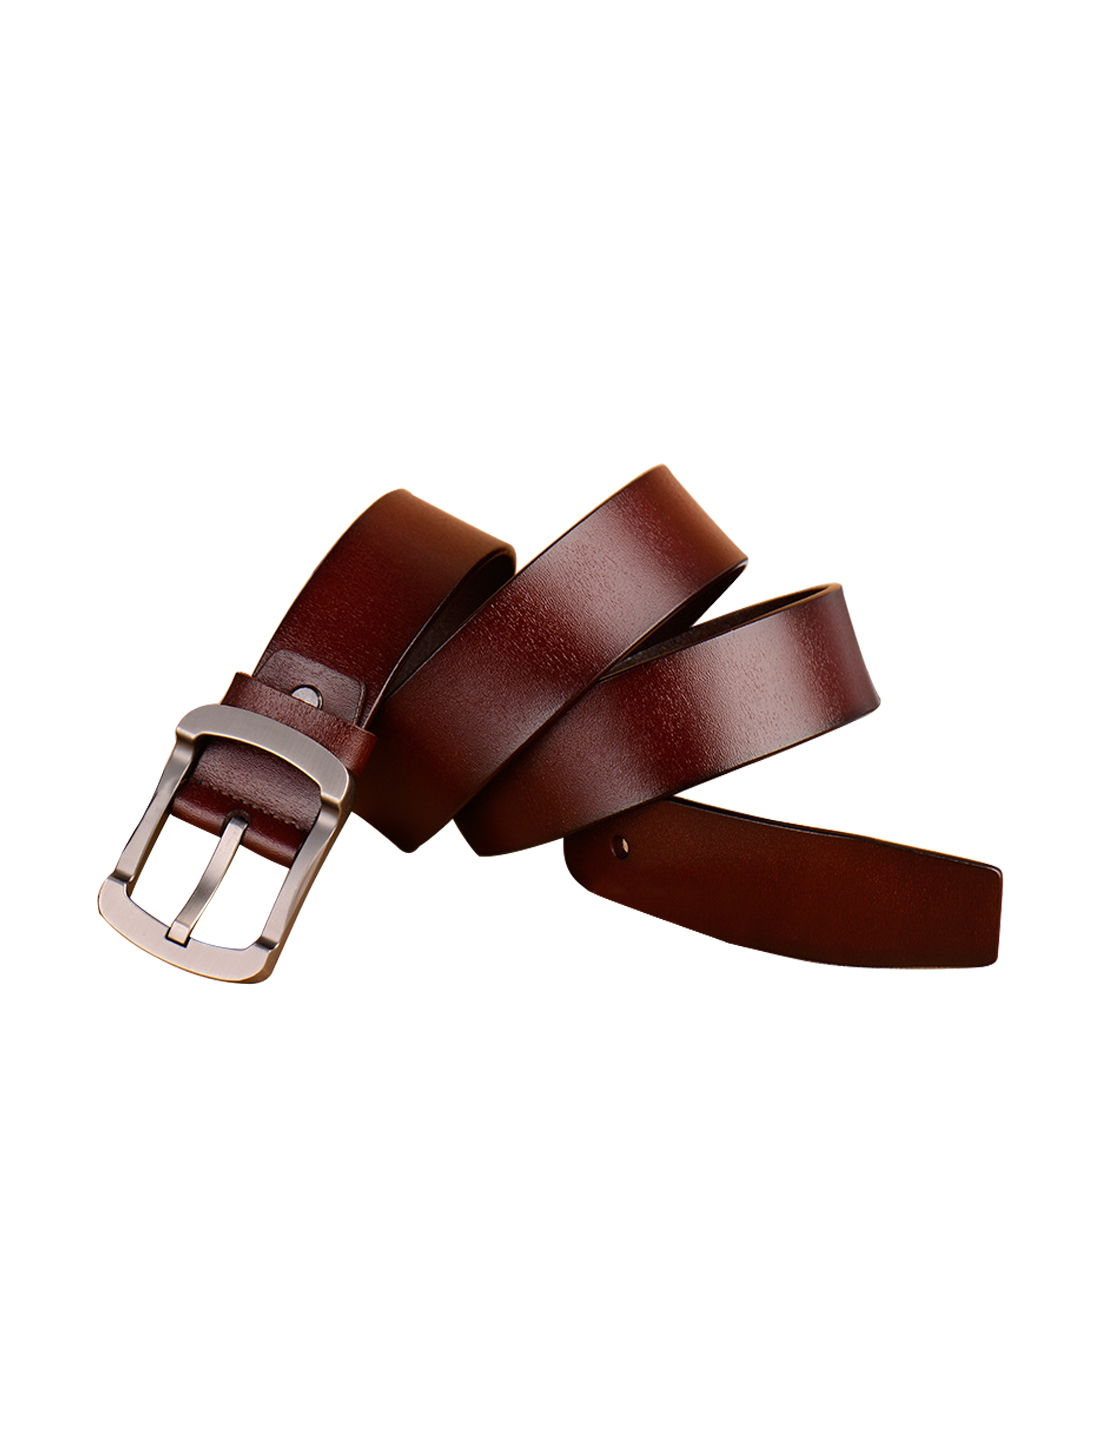 Men Youth Single Pin Buckle Dress Leather Belt 38mm Width 1 1/2 Brown 125cm